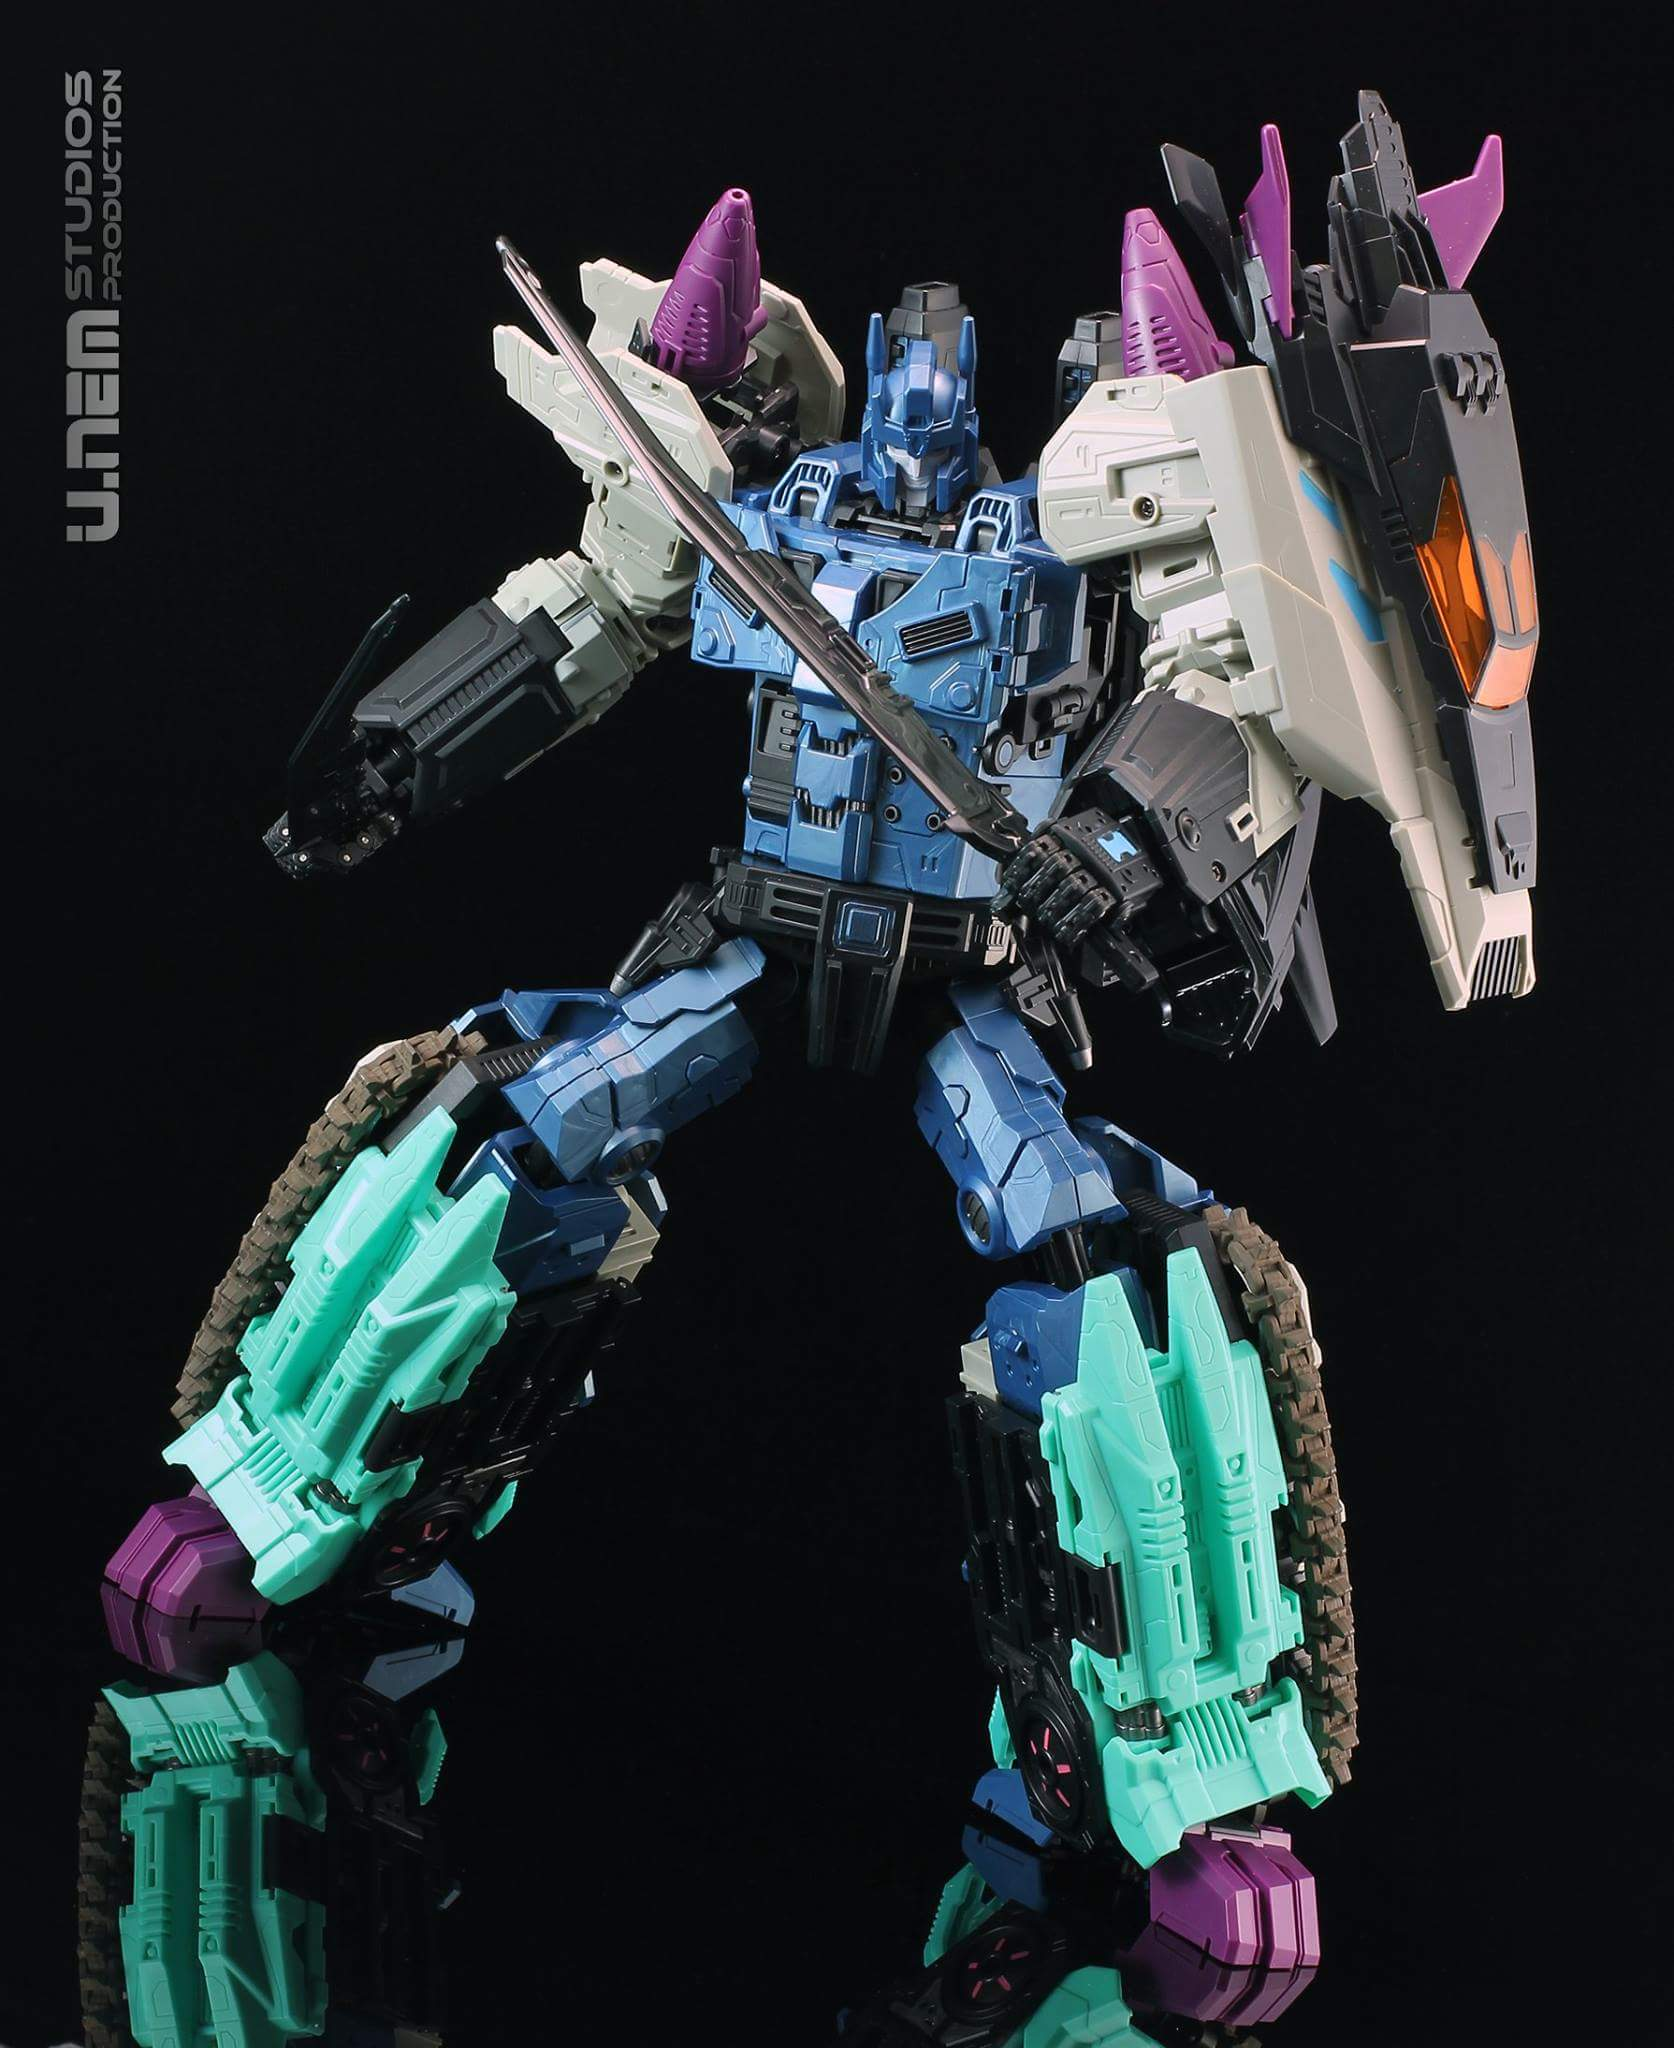 [Mastermind Creations] Produit Tiers - R-17 Carnifex - aka Overlord (TF Masterforce) - Page 2 Z9fh3QI6